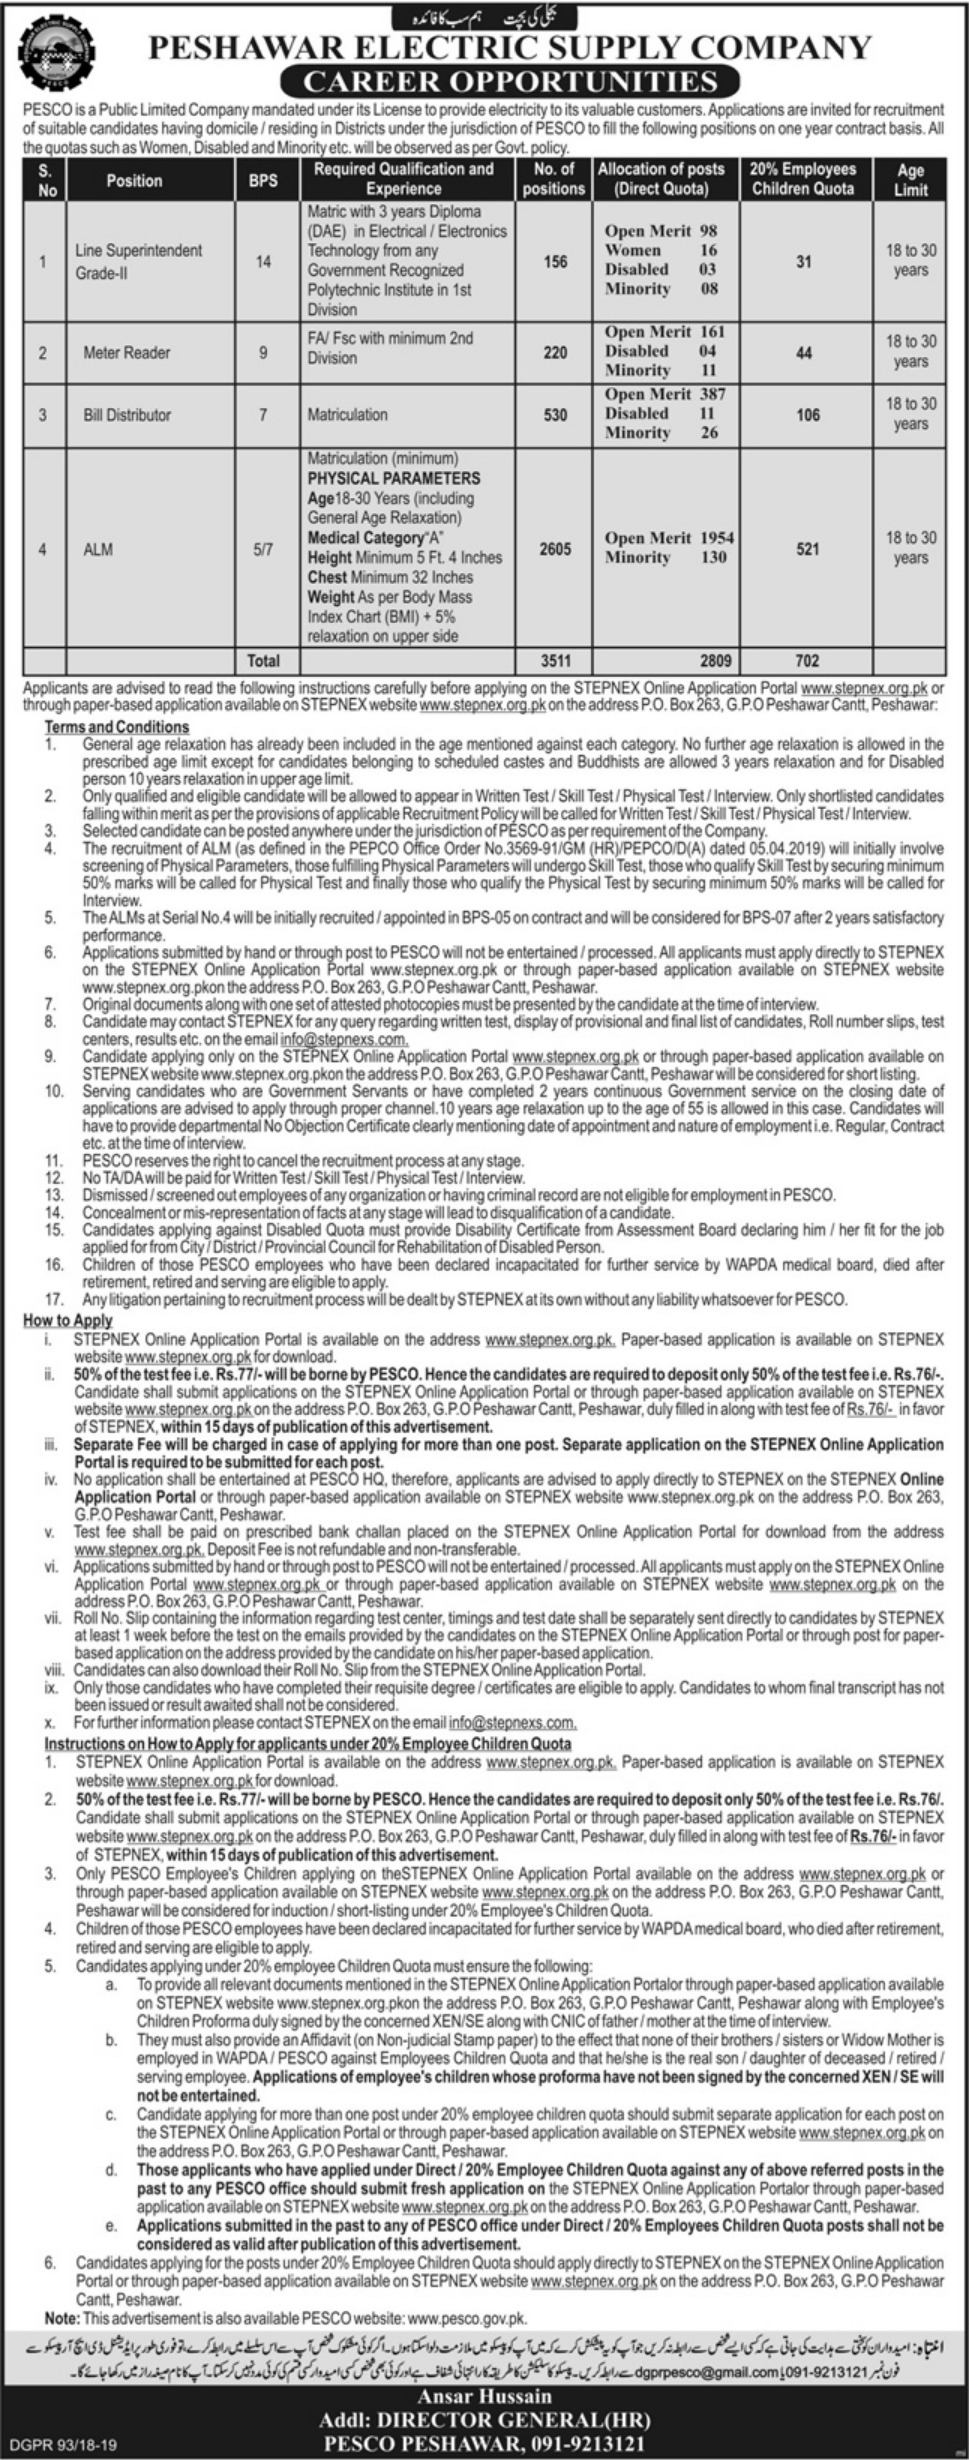 Peshawar Electric Supply Company PESCO Jobs 2019 through STEPNEX